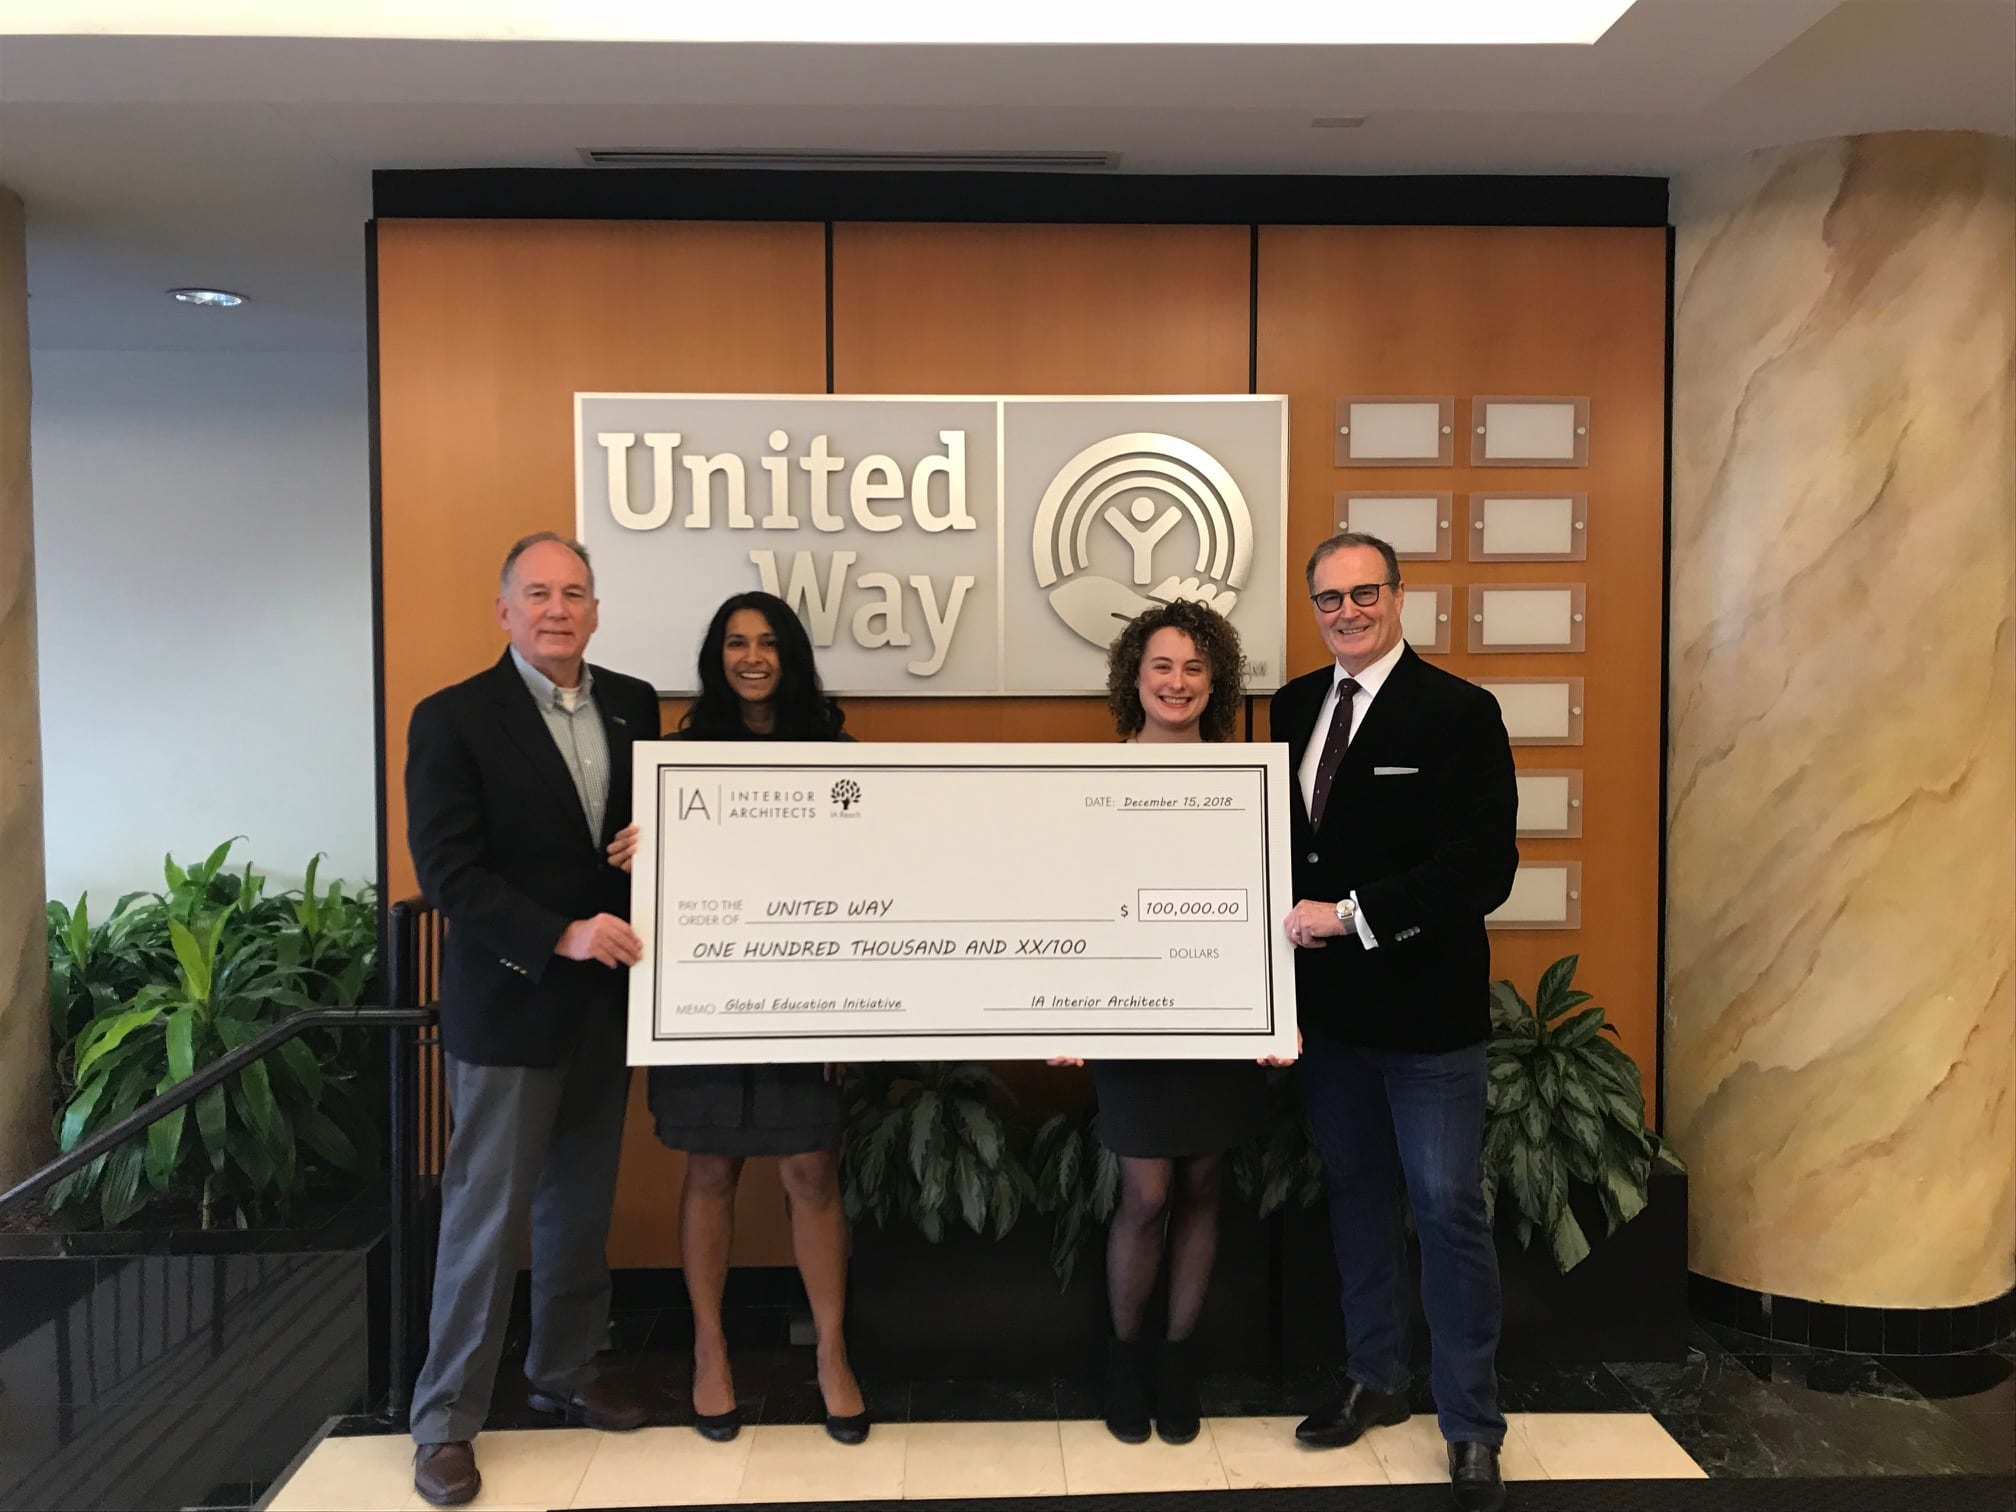 David Bourke presents the United Way With a Donation